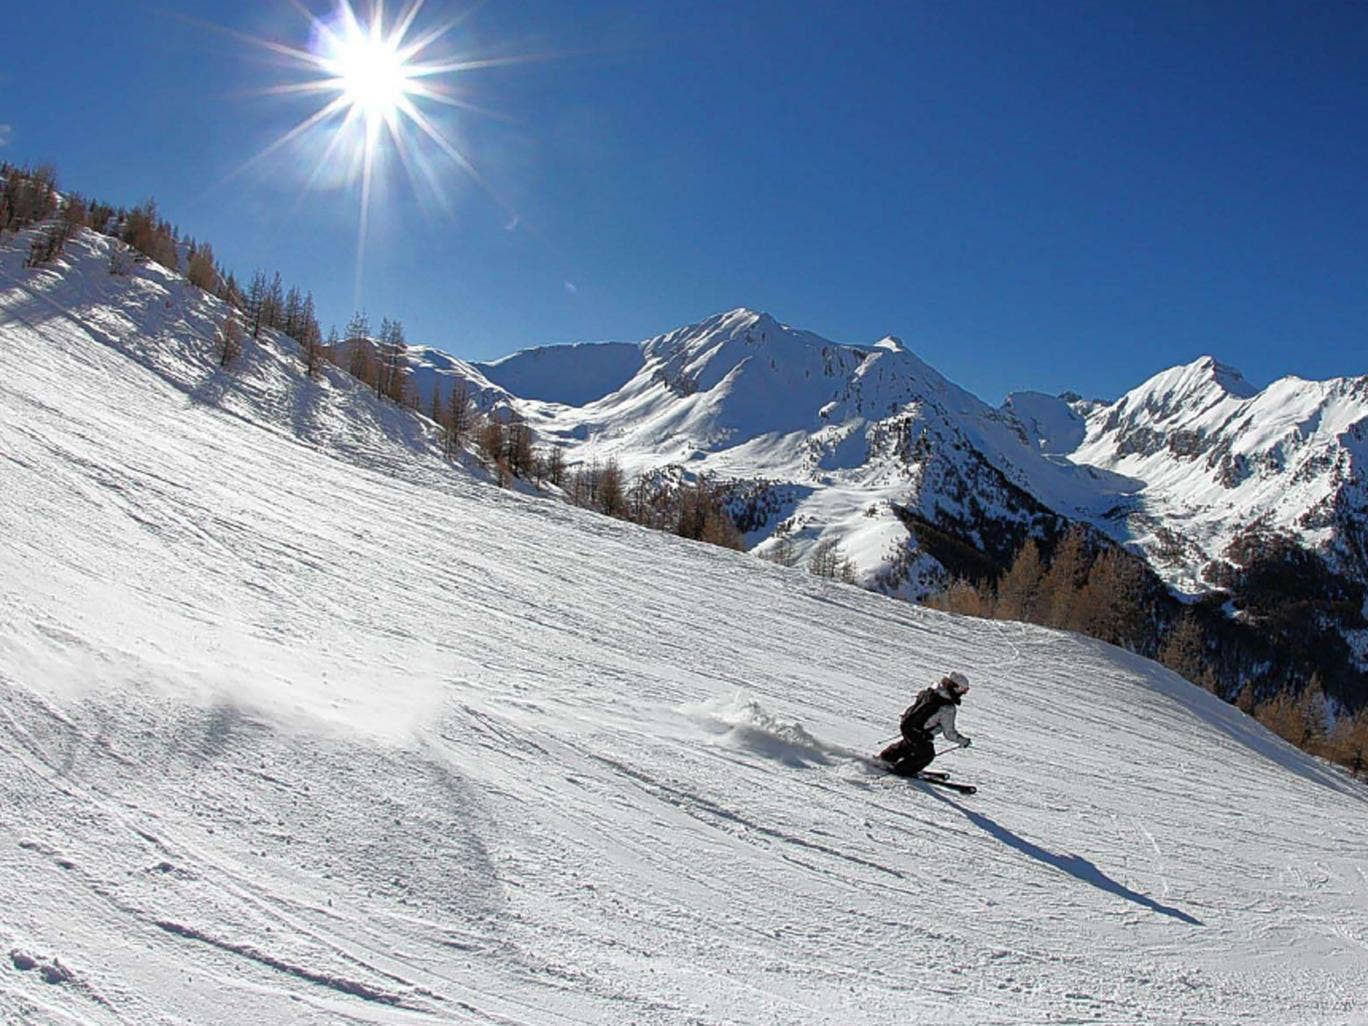 Small wonder: Les Orres, in the Hautes-Alpes